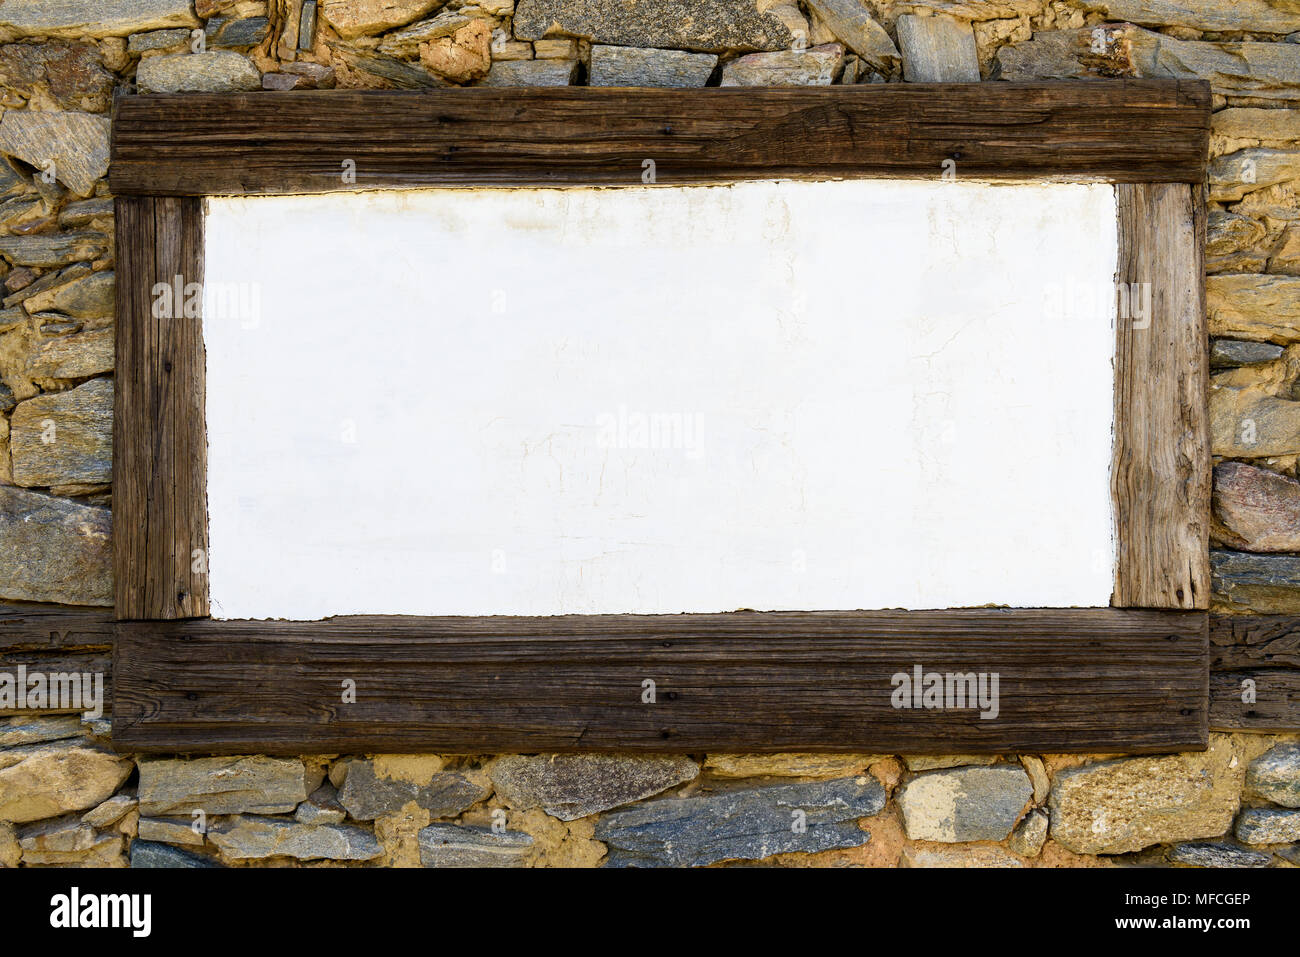 Blank white chalkboard in wooden frame on stone wall Stock Photo ...